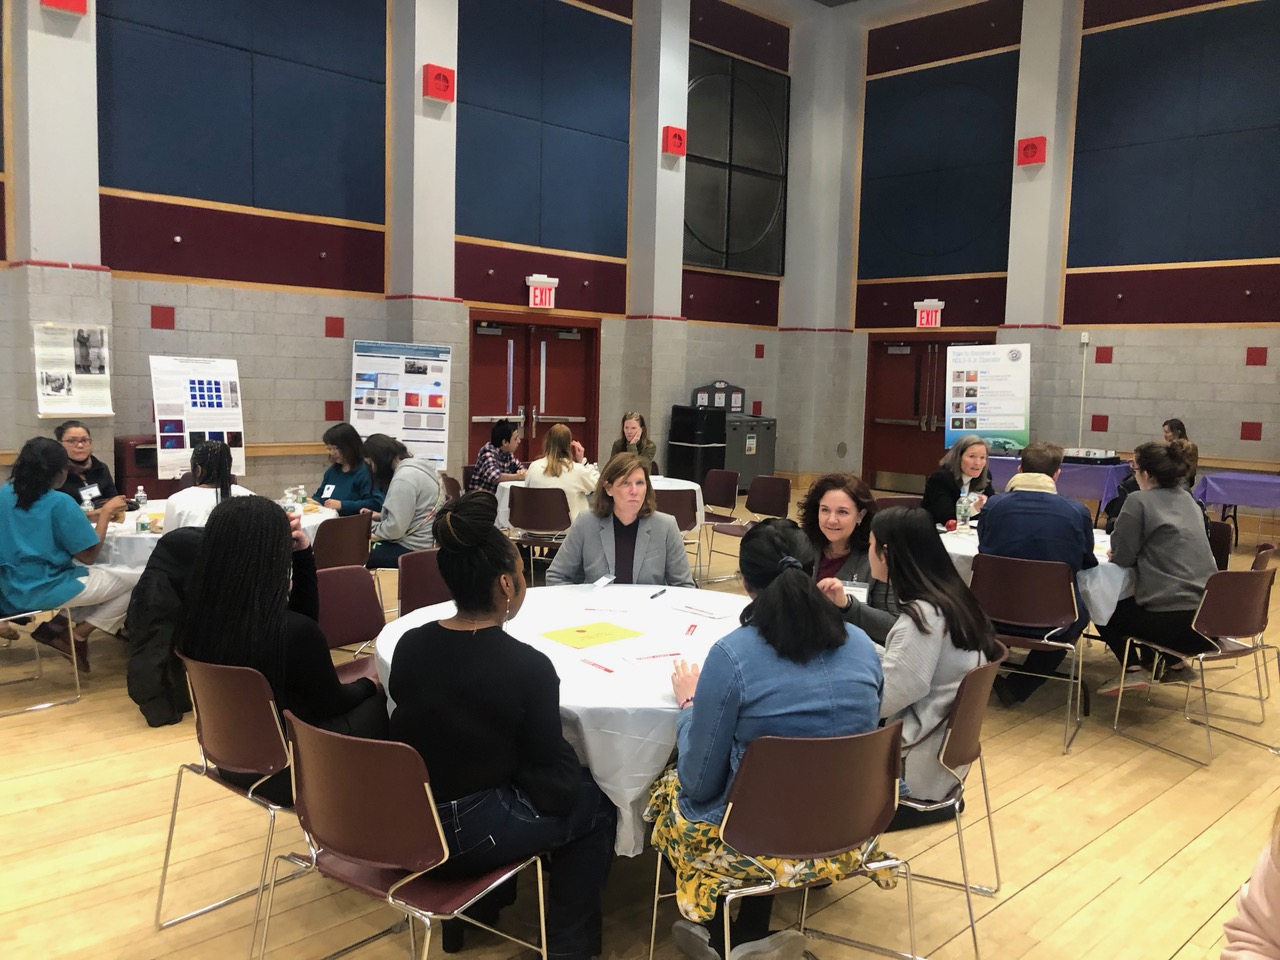 Attendees were divided into topic tables, with each table focusing on a topic concerning women in STEM.